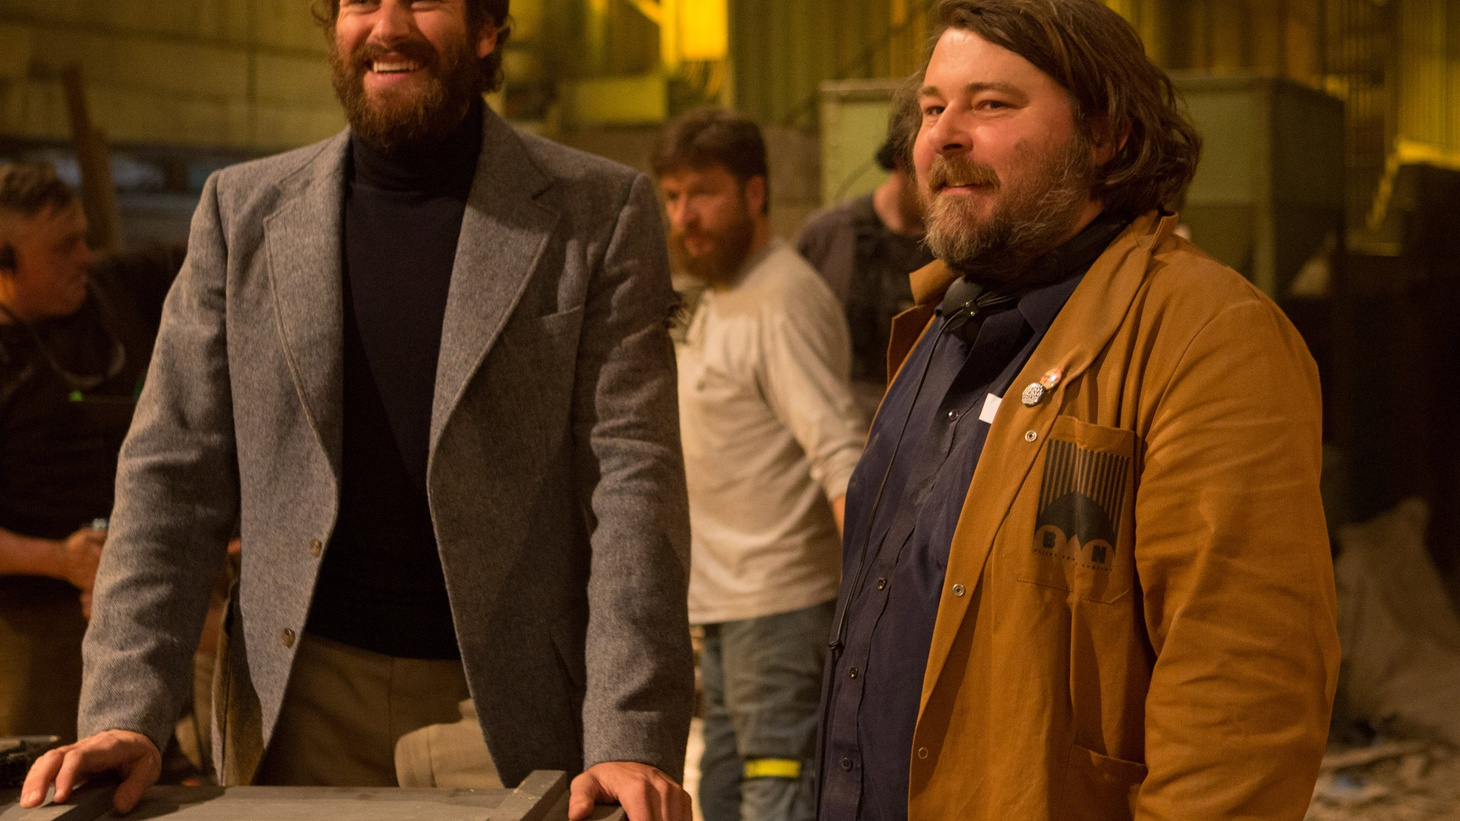 British filmmaker Ben Wheatley has built up a cult following with his hyper-violent, darkly funny movies. His newest film Free Fire is an action comedy starring Brie Larson, Armie Hammer, and a whole lot of guns. The movie has the broadest commercial appeal of any of his work to date, but it's still a Ben Wheatley film, which means, spoiler alert...a lot of people die.